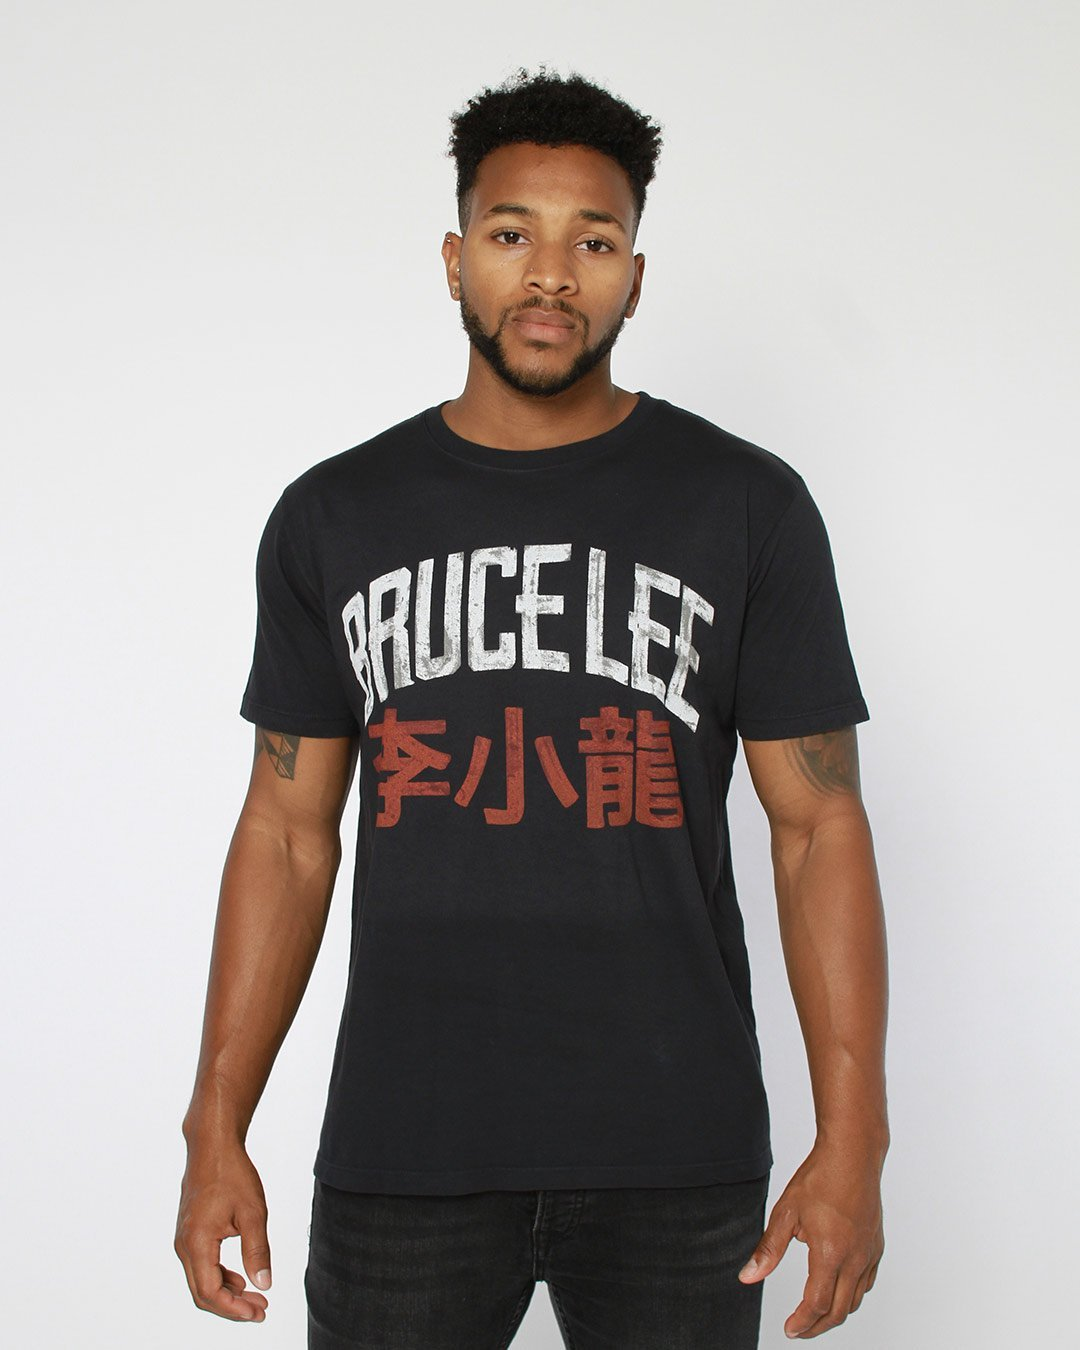 Bruce Lee Script Tee - Roots of Inc dba Roots of Fight